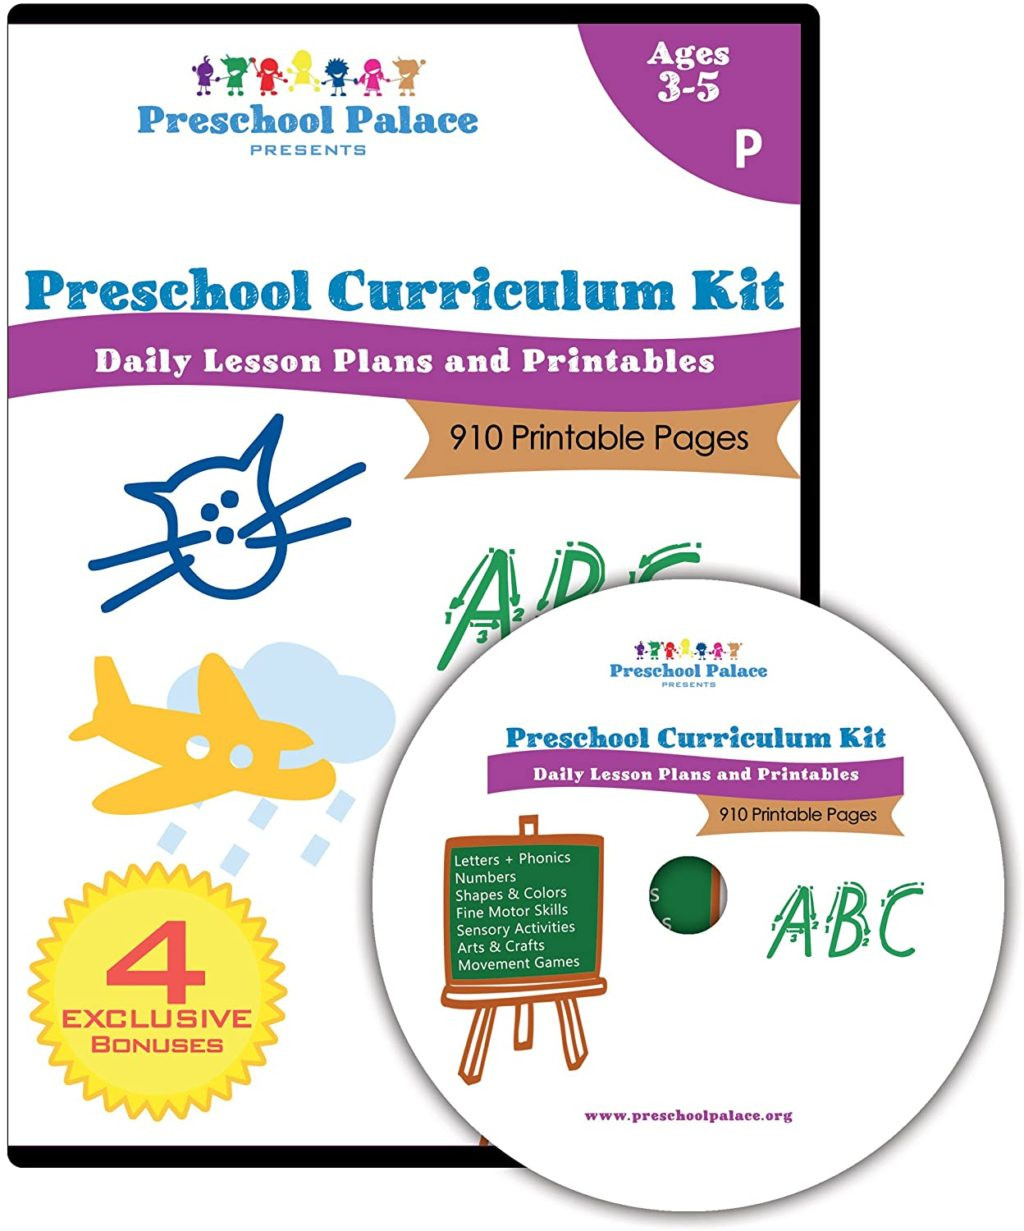 Preschool Palace Curriculum Worksheet Printing Activities forrten Image Ideas